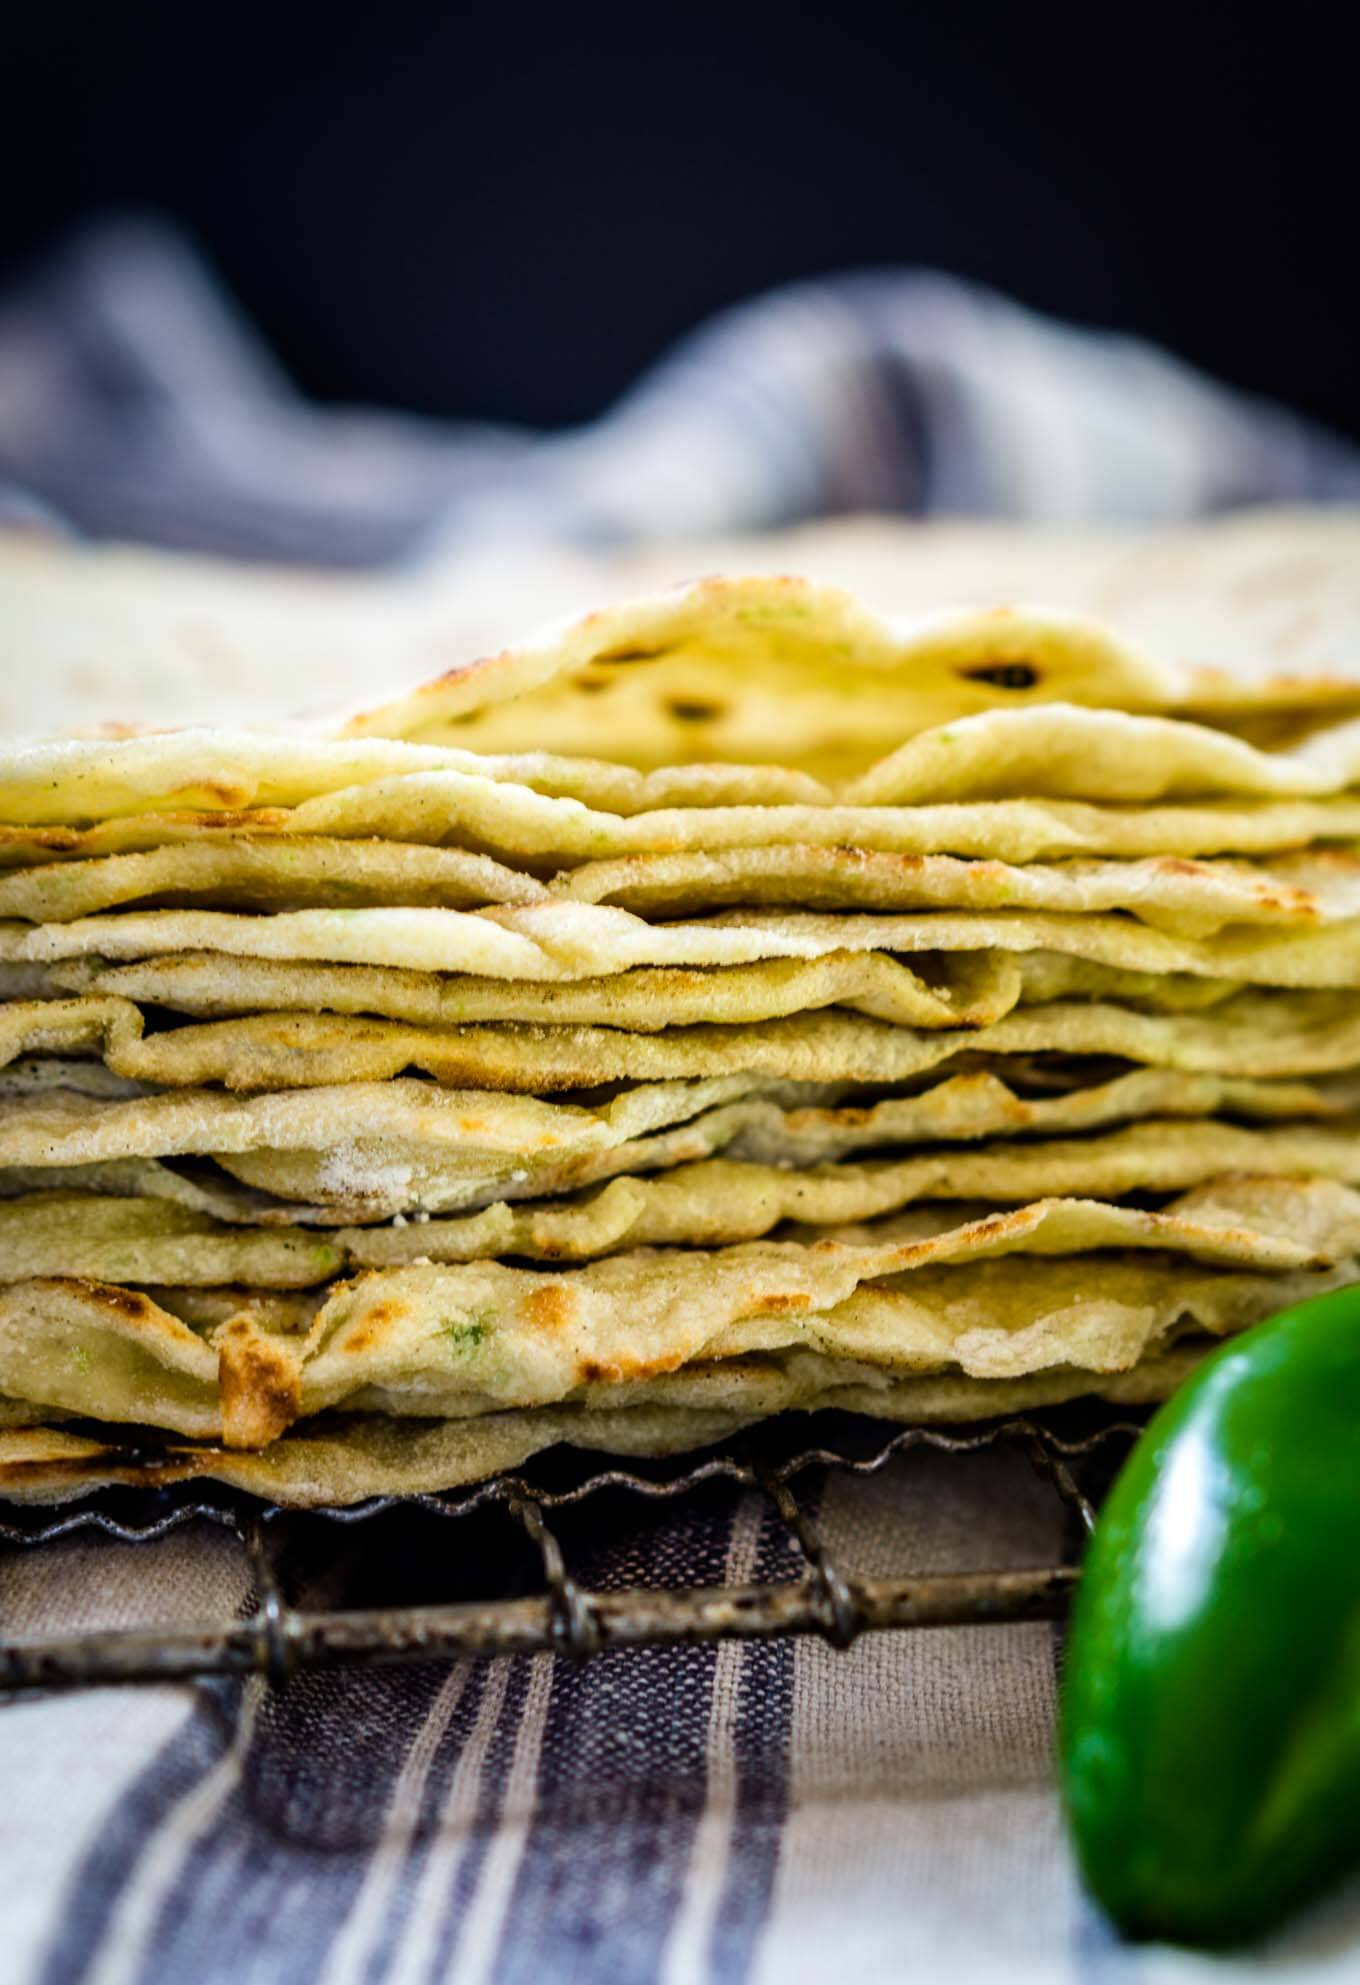 A stack of homemade tortilla shells on a cooling rack. A fresh jalapeno sits in the front and a blue striped towel sits in the background.